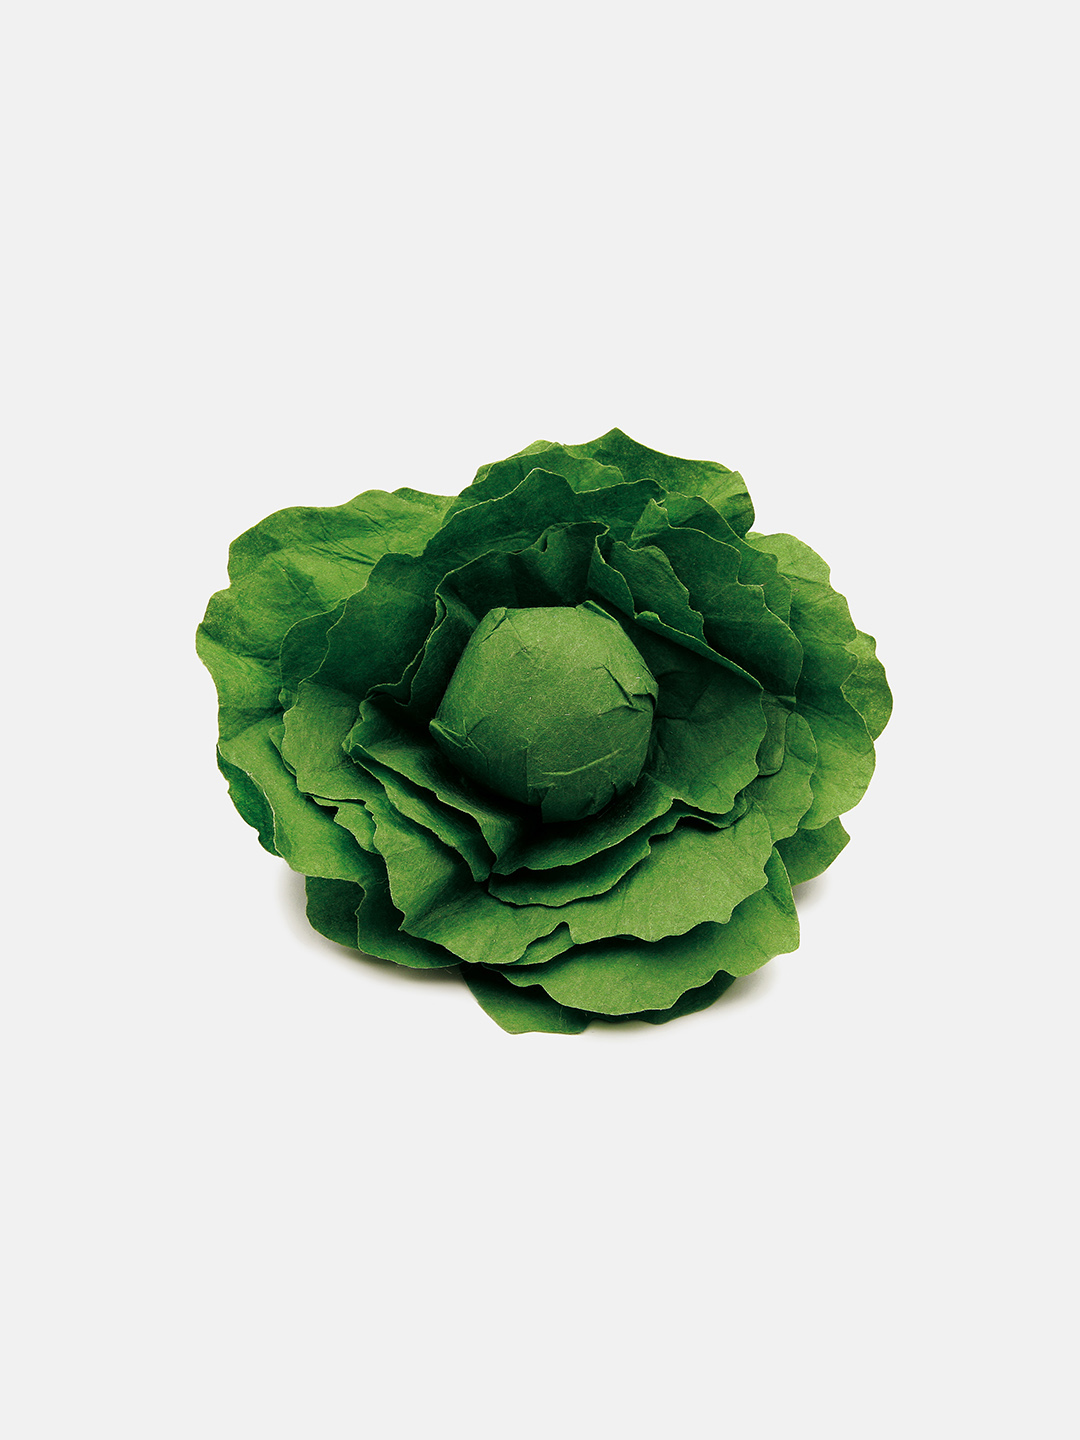 Wooden Vegetable - Lettuce